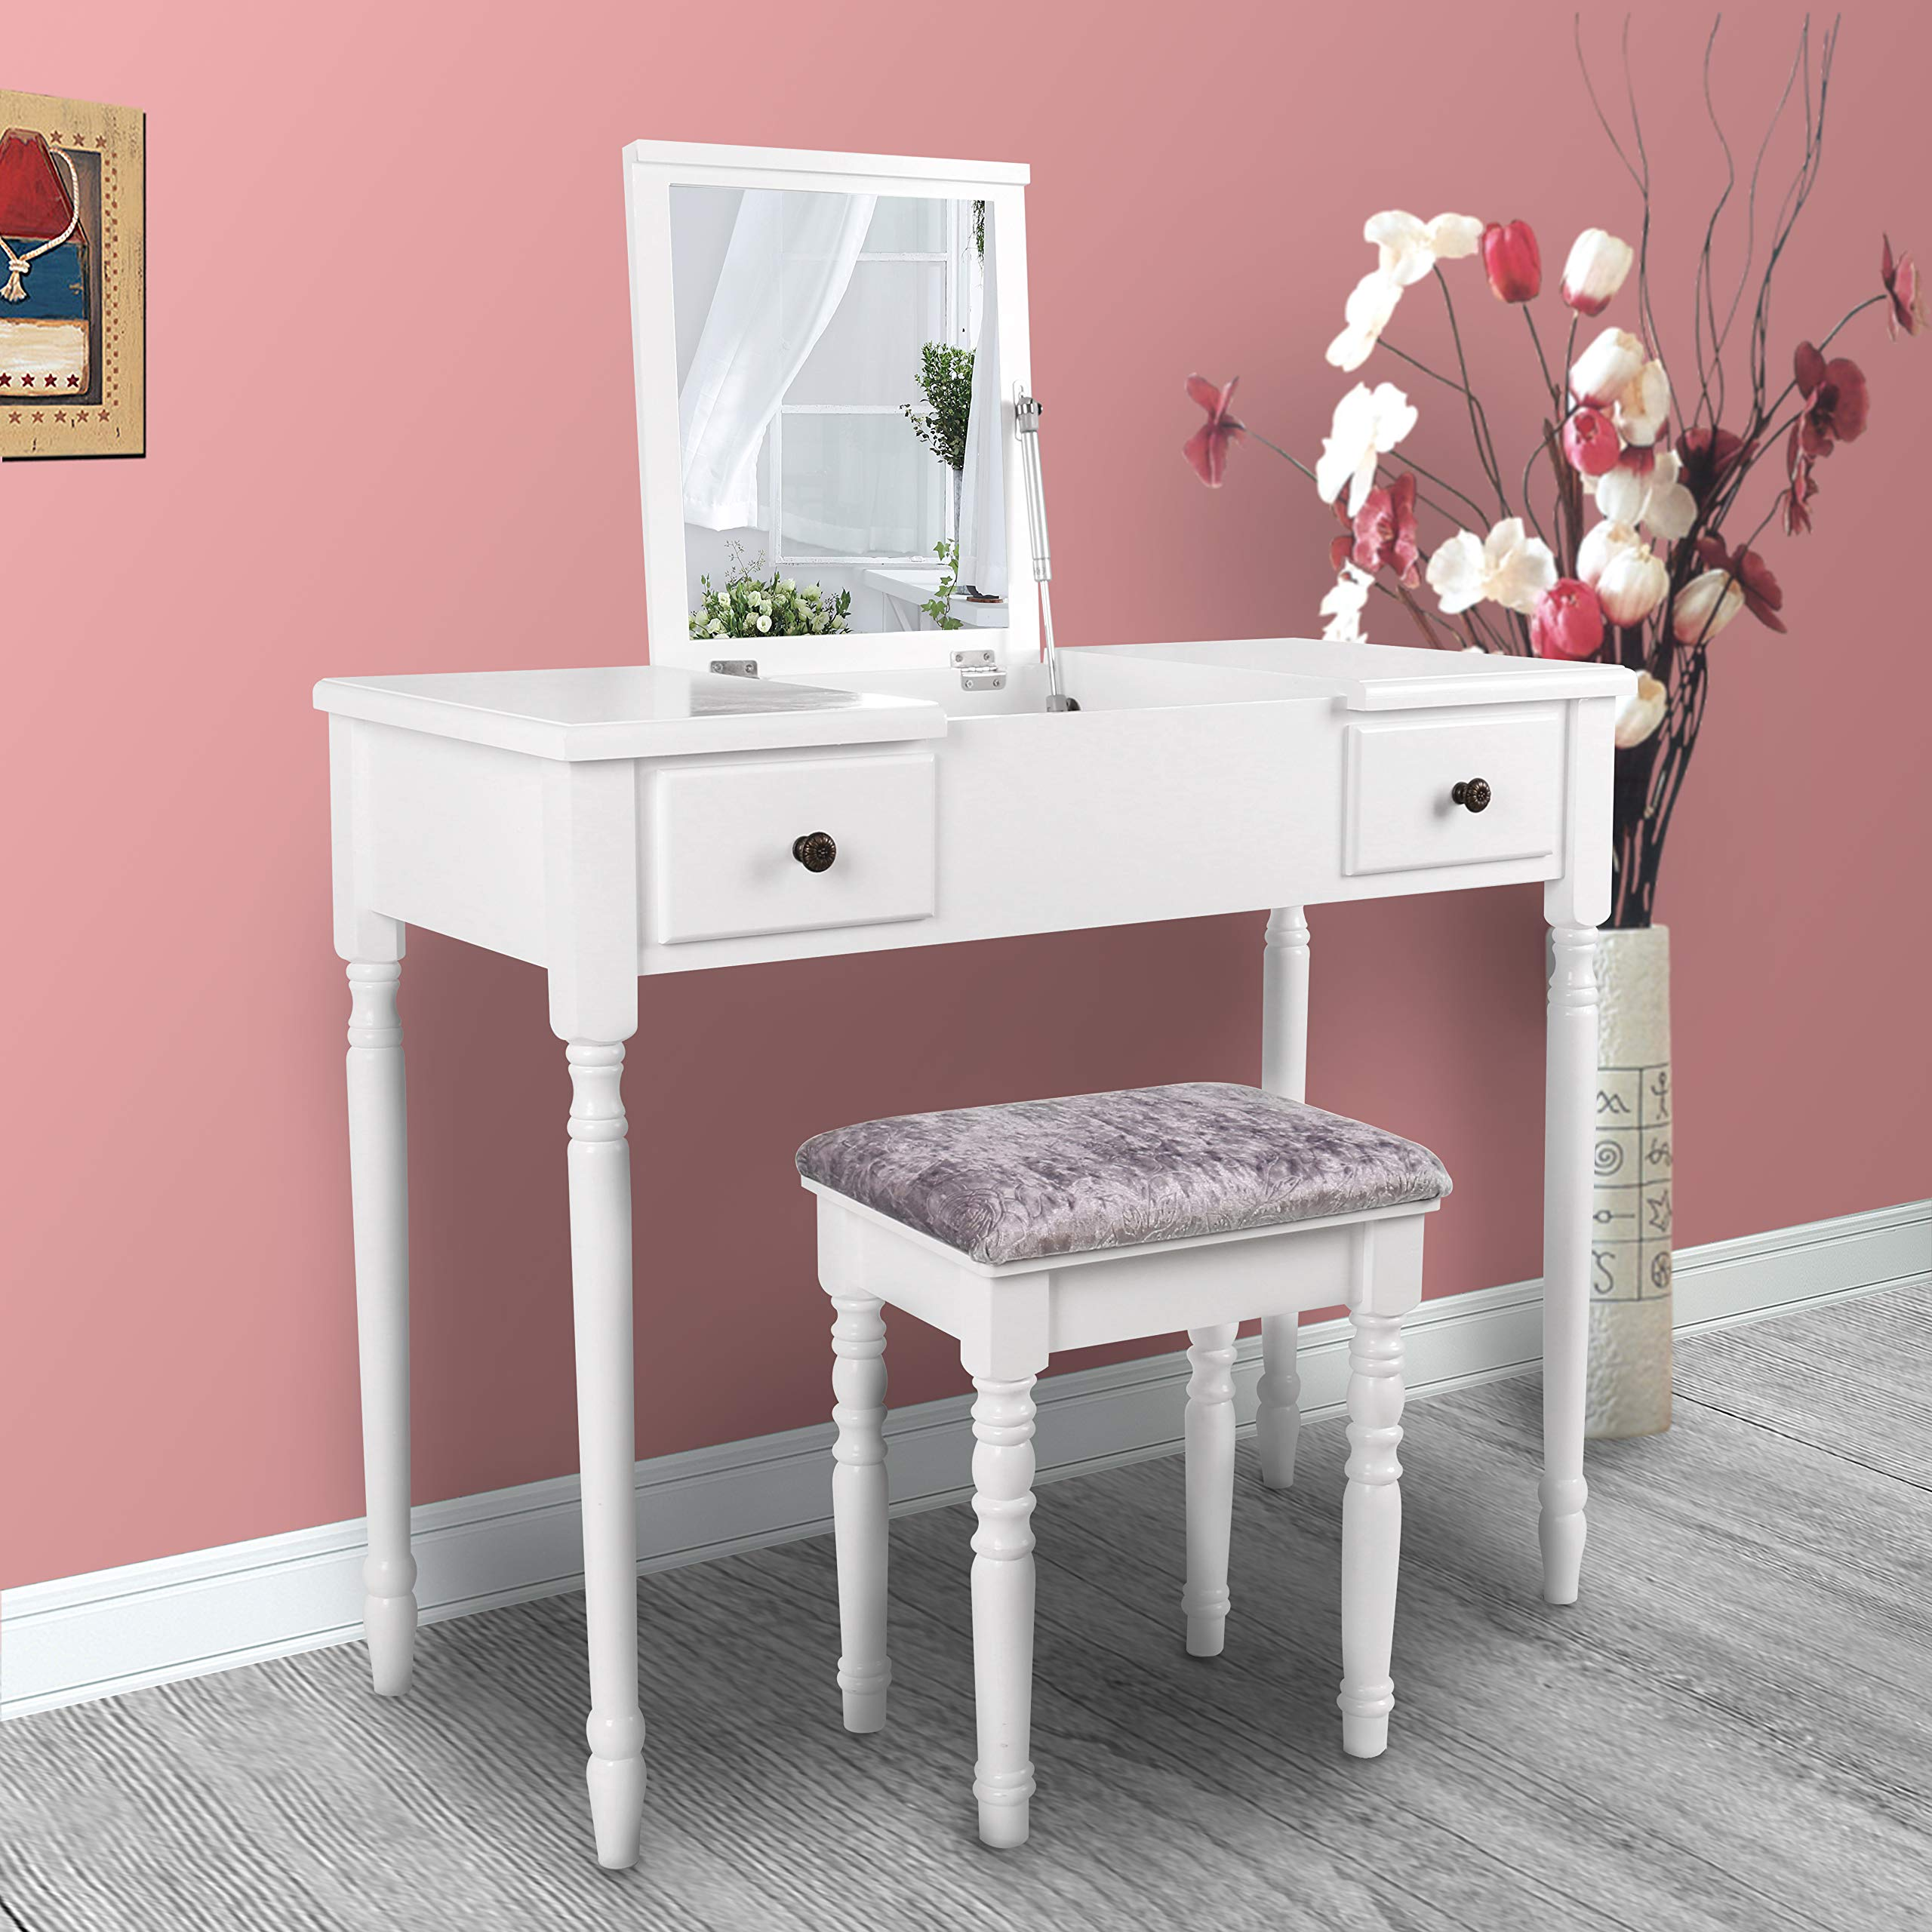 YOUKE Vanity Table with Flip Top Mirror Makeup Dressing Table Writing Desk with Cushioning Makeup Stool Set, 2 Drawers 3 Removable Organizers Easy Assembly (White)